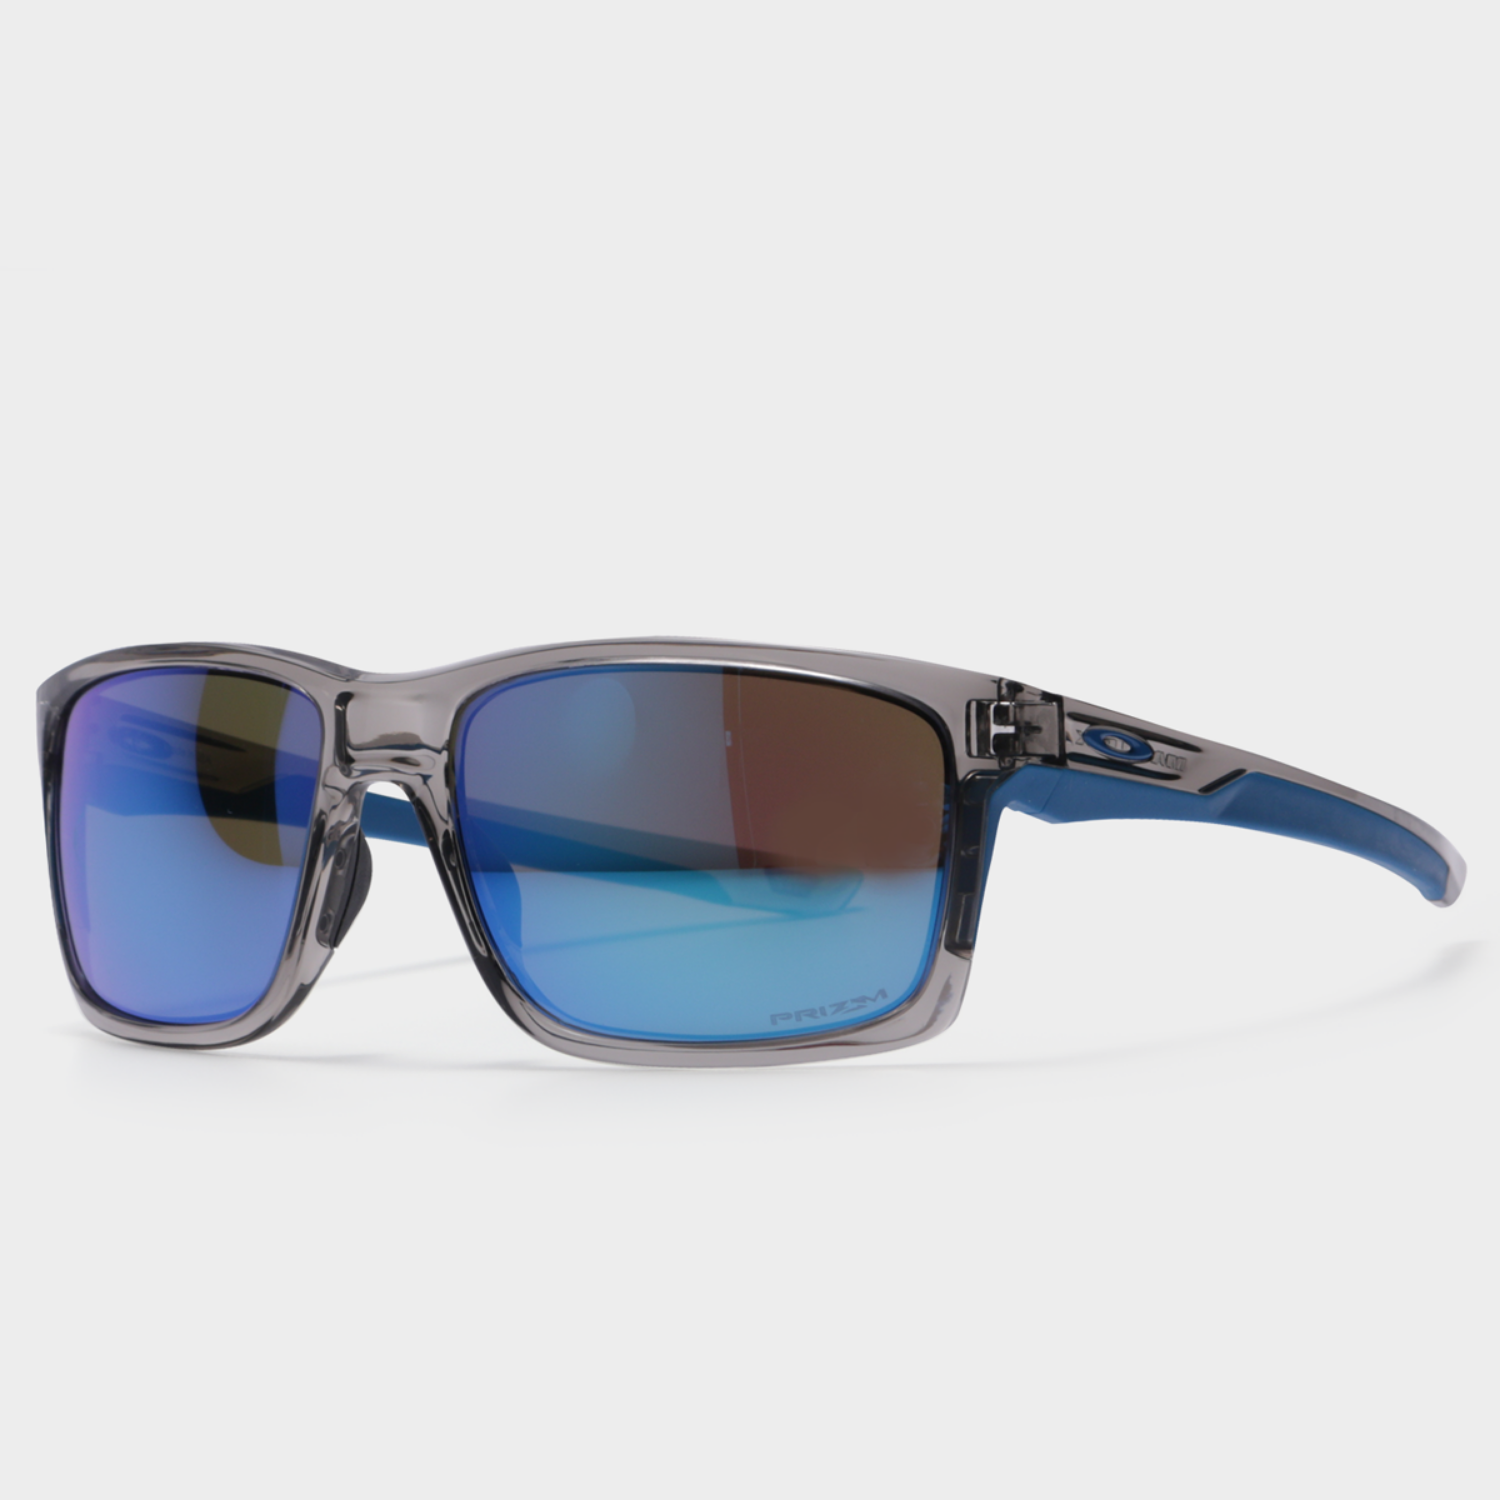 [오클리선글라스] 메인링크 MAINLINK XL OO9264 4261 GREY INK (Blue Mirror) (OAKLEY)